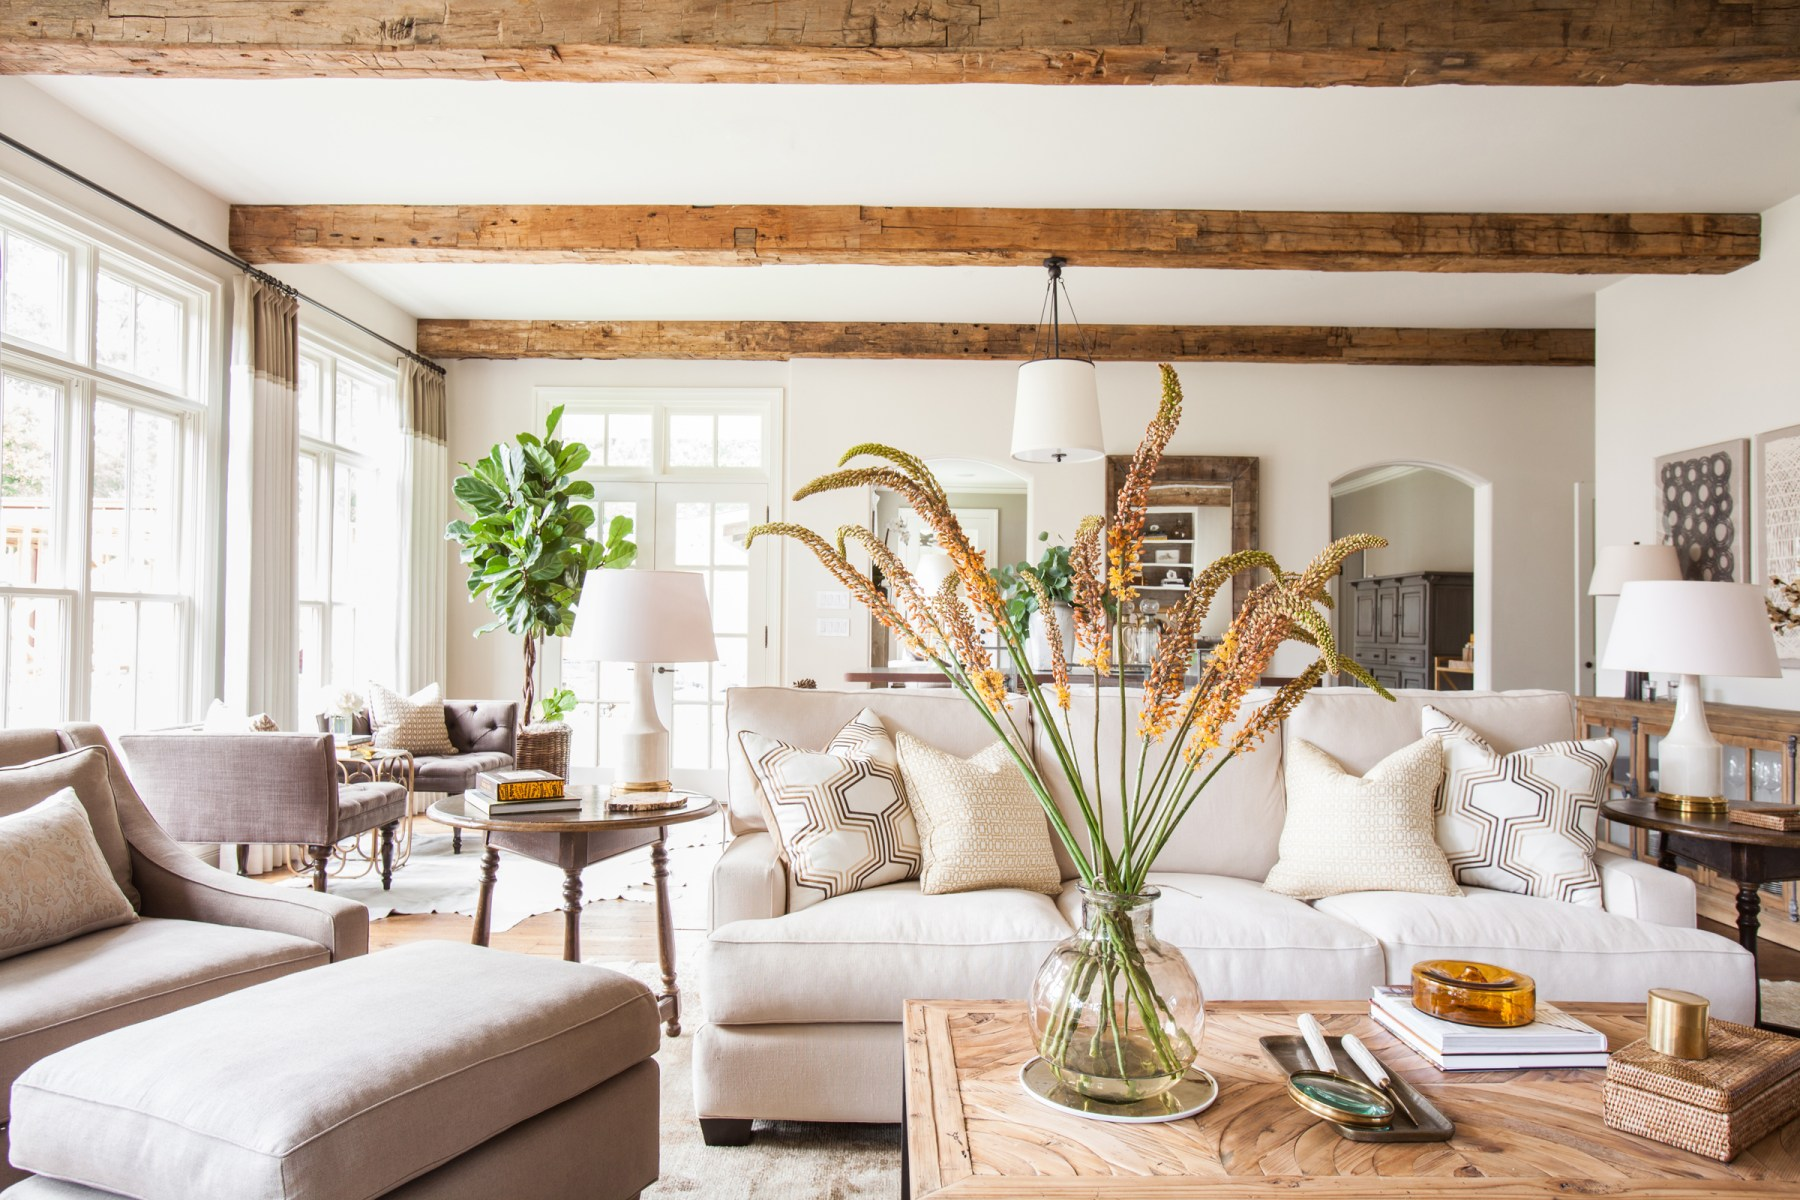 kinfolk&soul transitional Marie-Flanigan-Light-Bright-Living-Room-Earthy-Organic-Wood-Beams